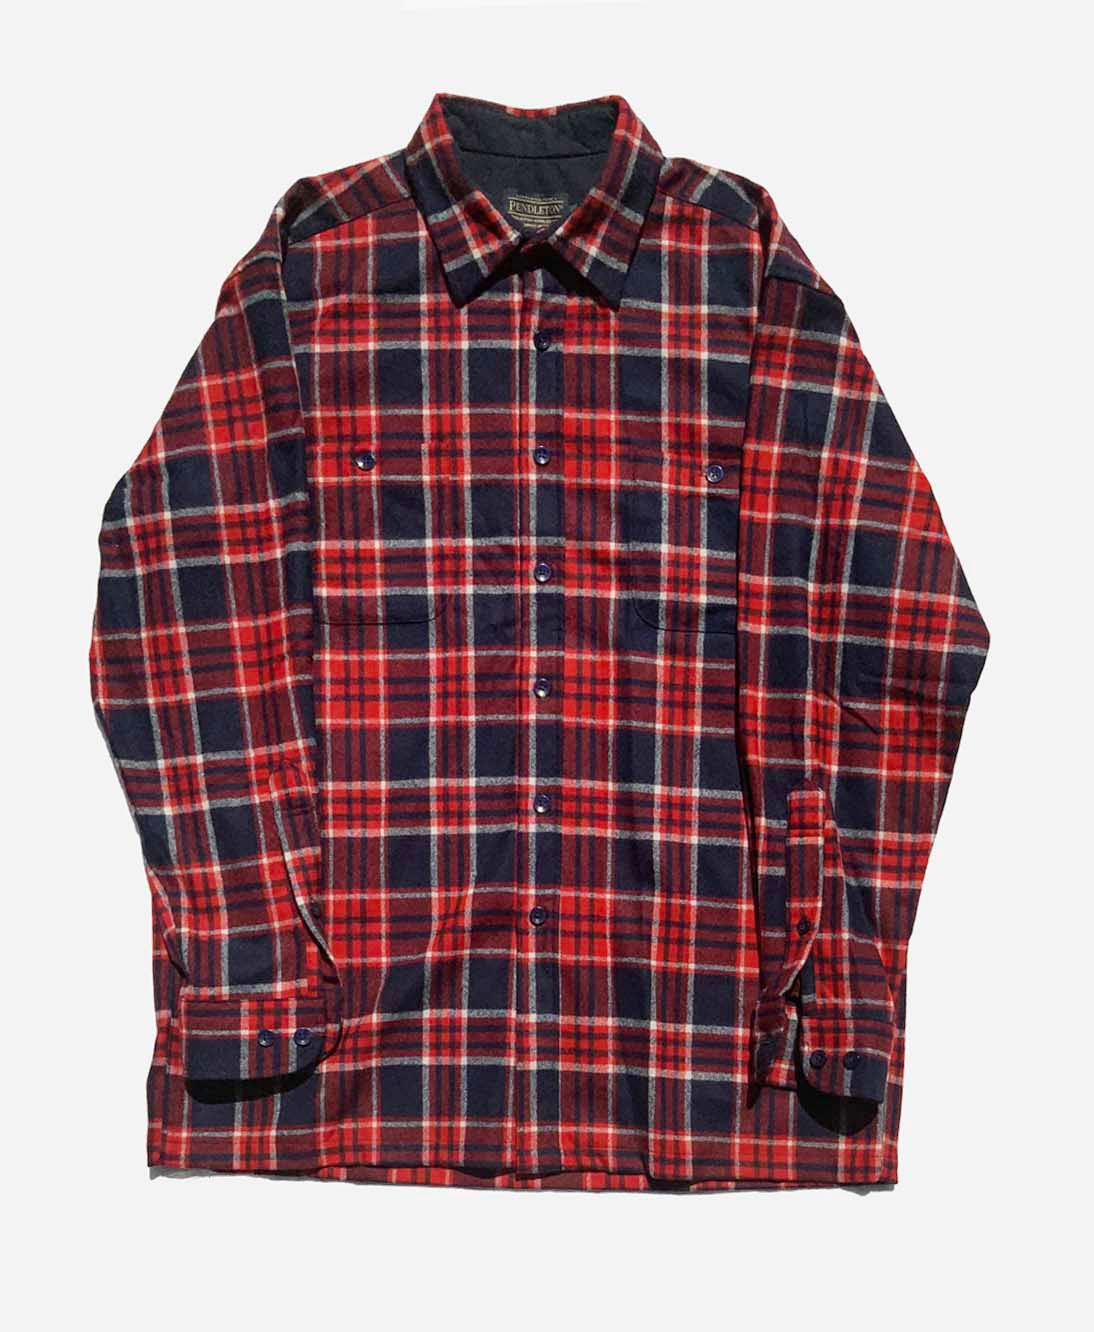 Boardshirt Fitted Shirt